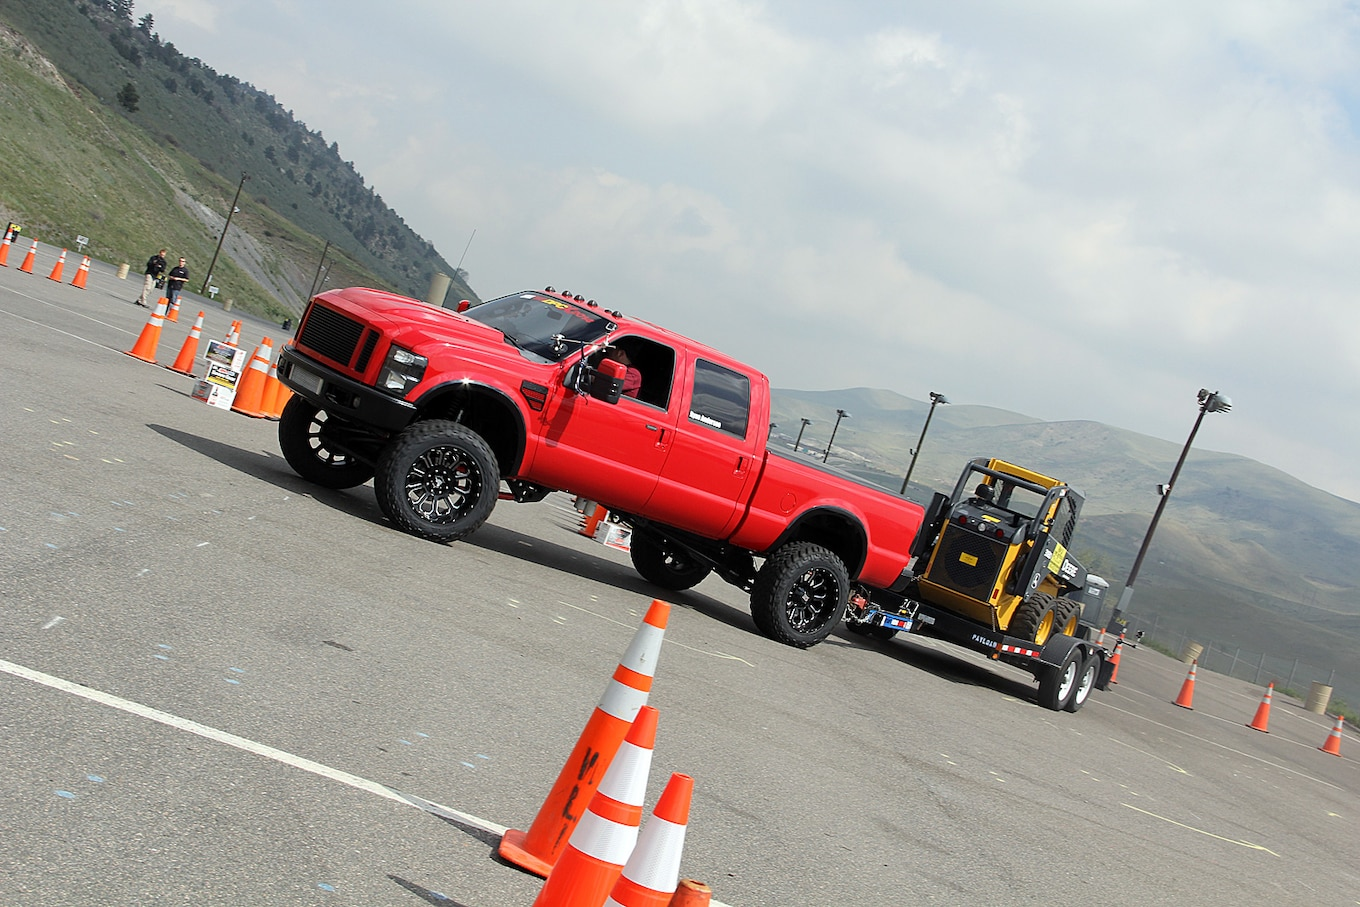 hight resolution of 2014 diesel power challenge trailer obstacle course 85 196